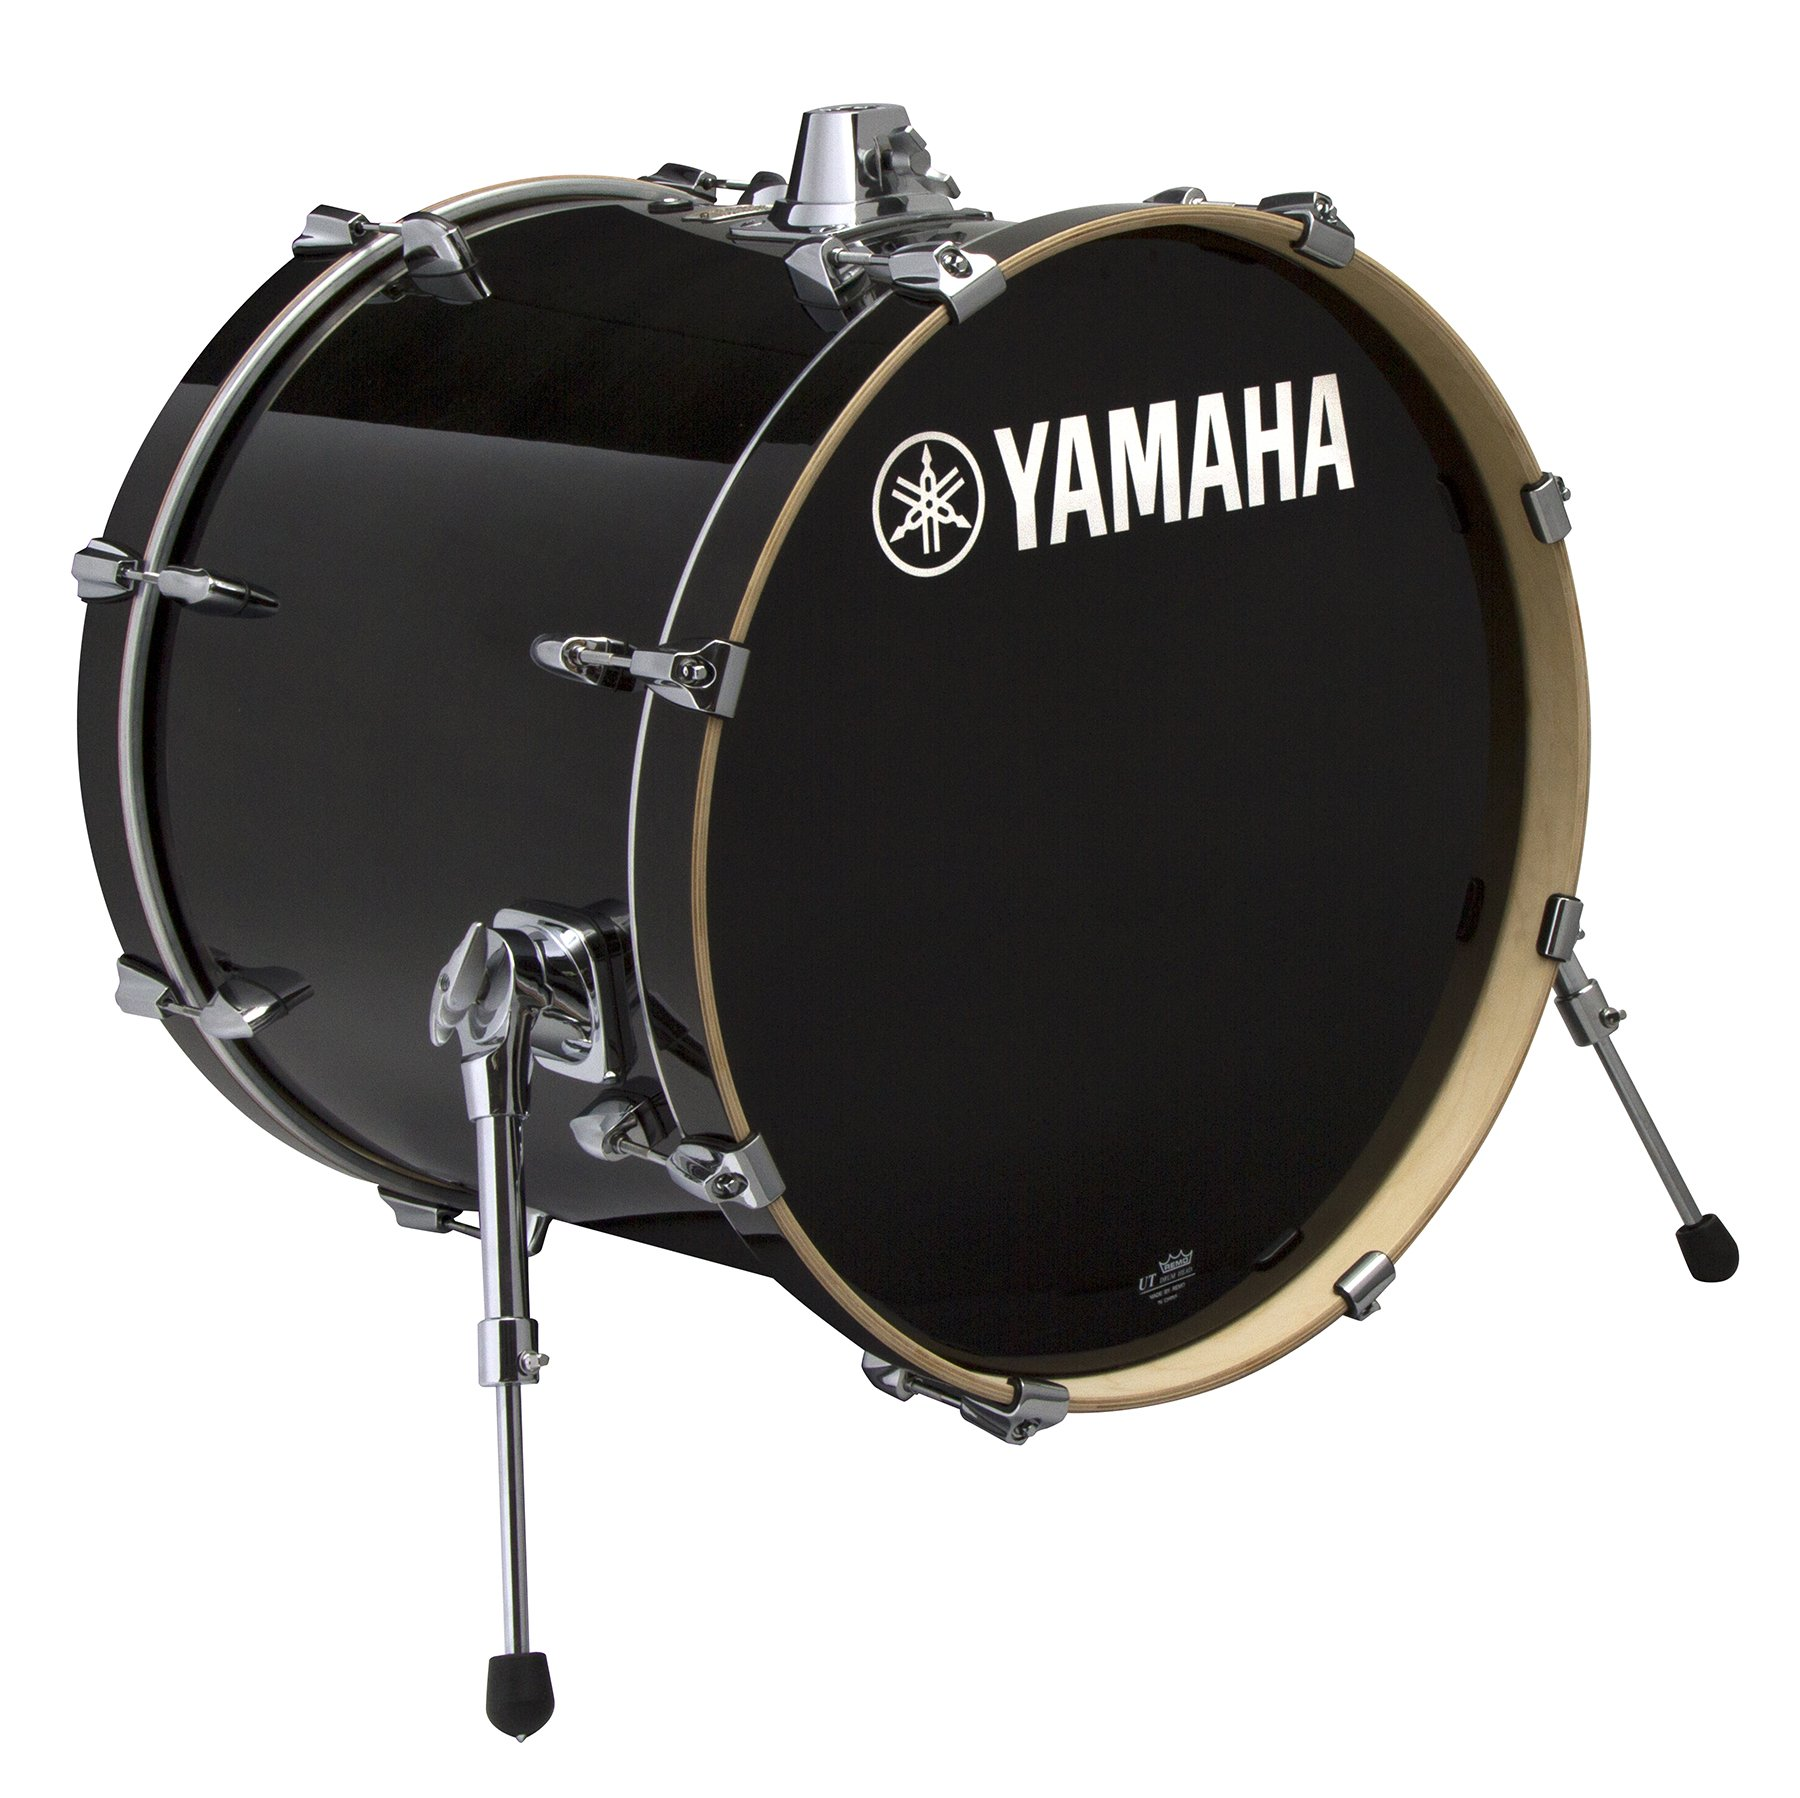 Yamaha Stage Custom Birch 18x15 Bass Drum, Raven Black